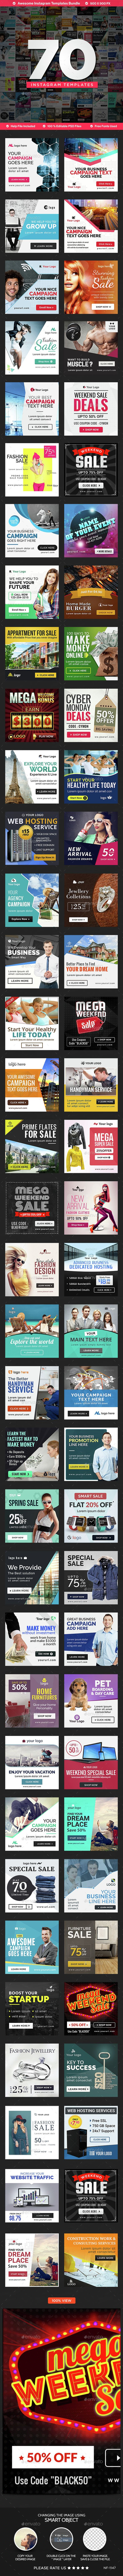 Instagram Banners - 70 Banners - Banners & Ads Web Elements